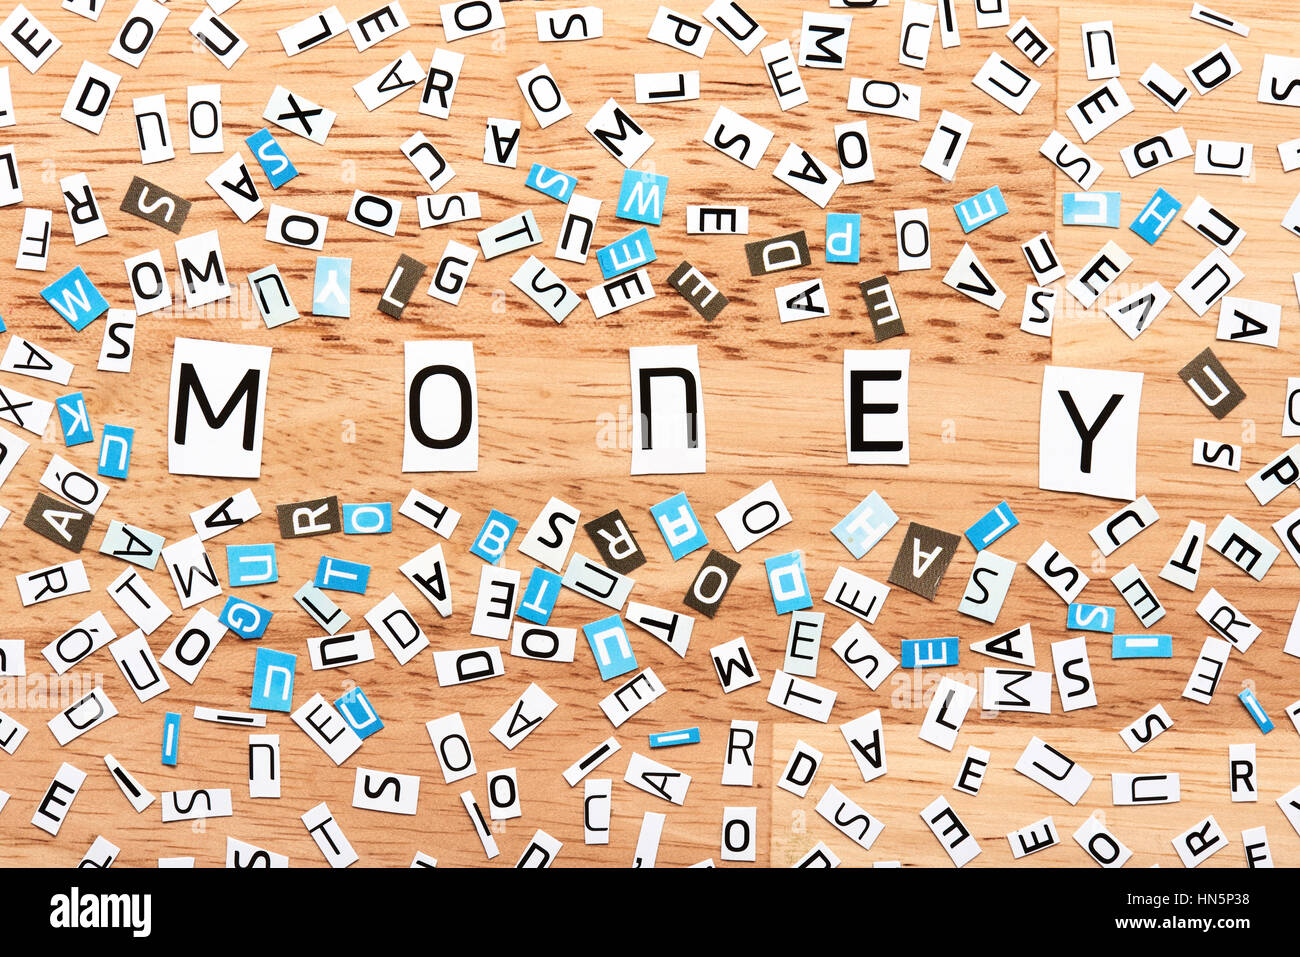 Money word from cut out letters on wooden table Stock